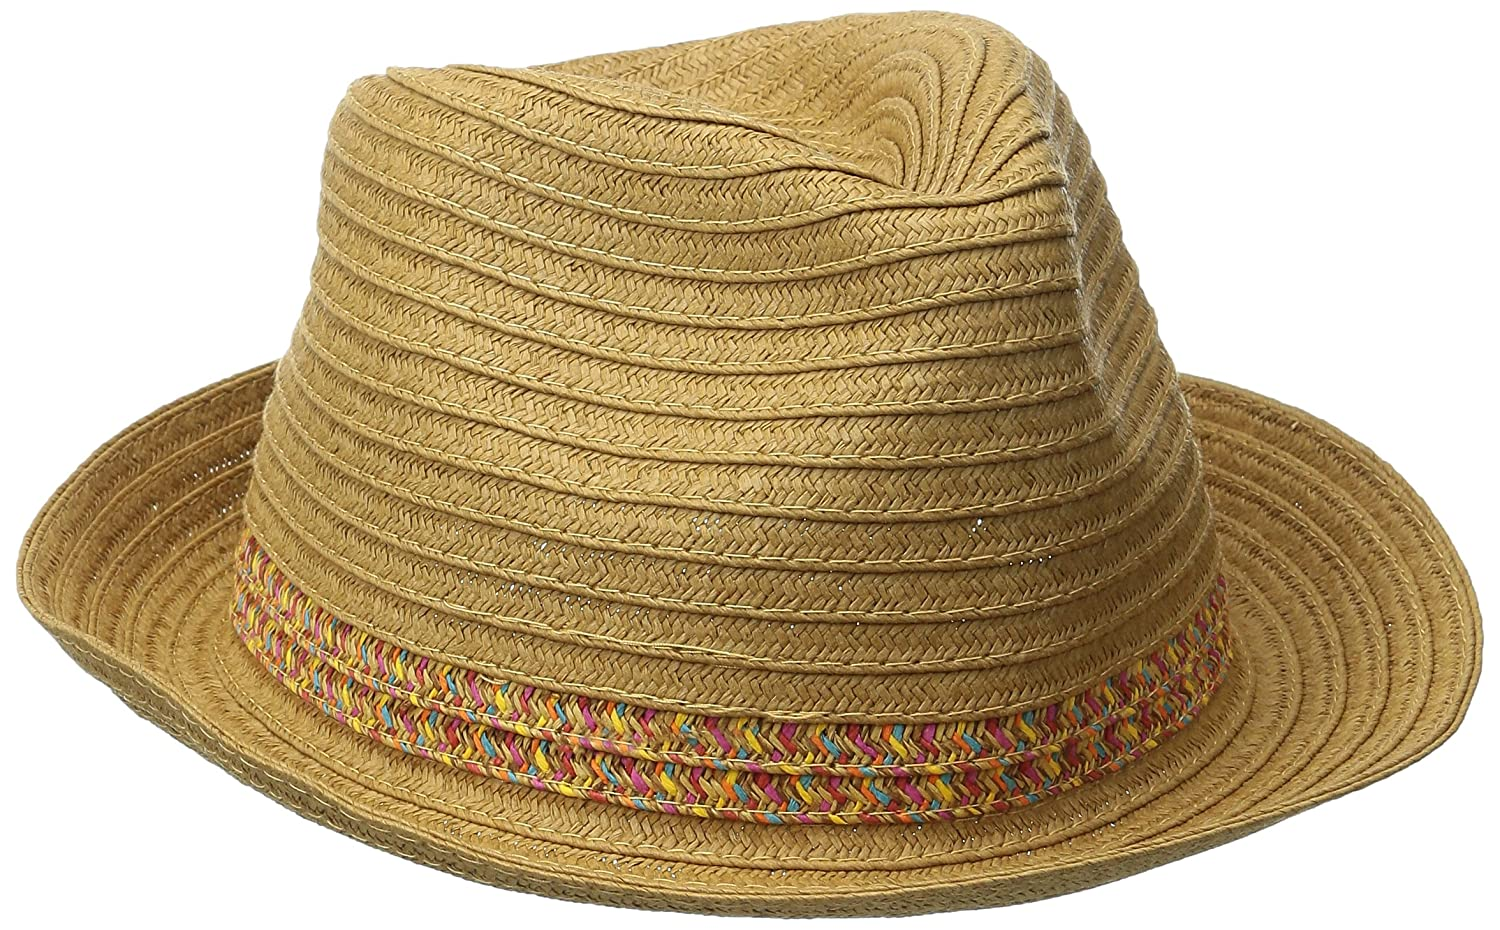 San Diego Hat Company Womens Panama Hat with Contrast Inset